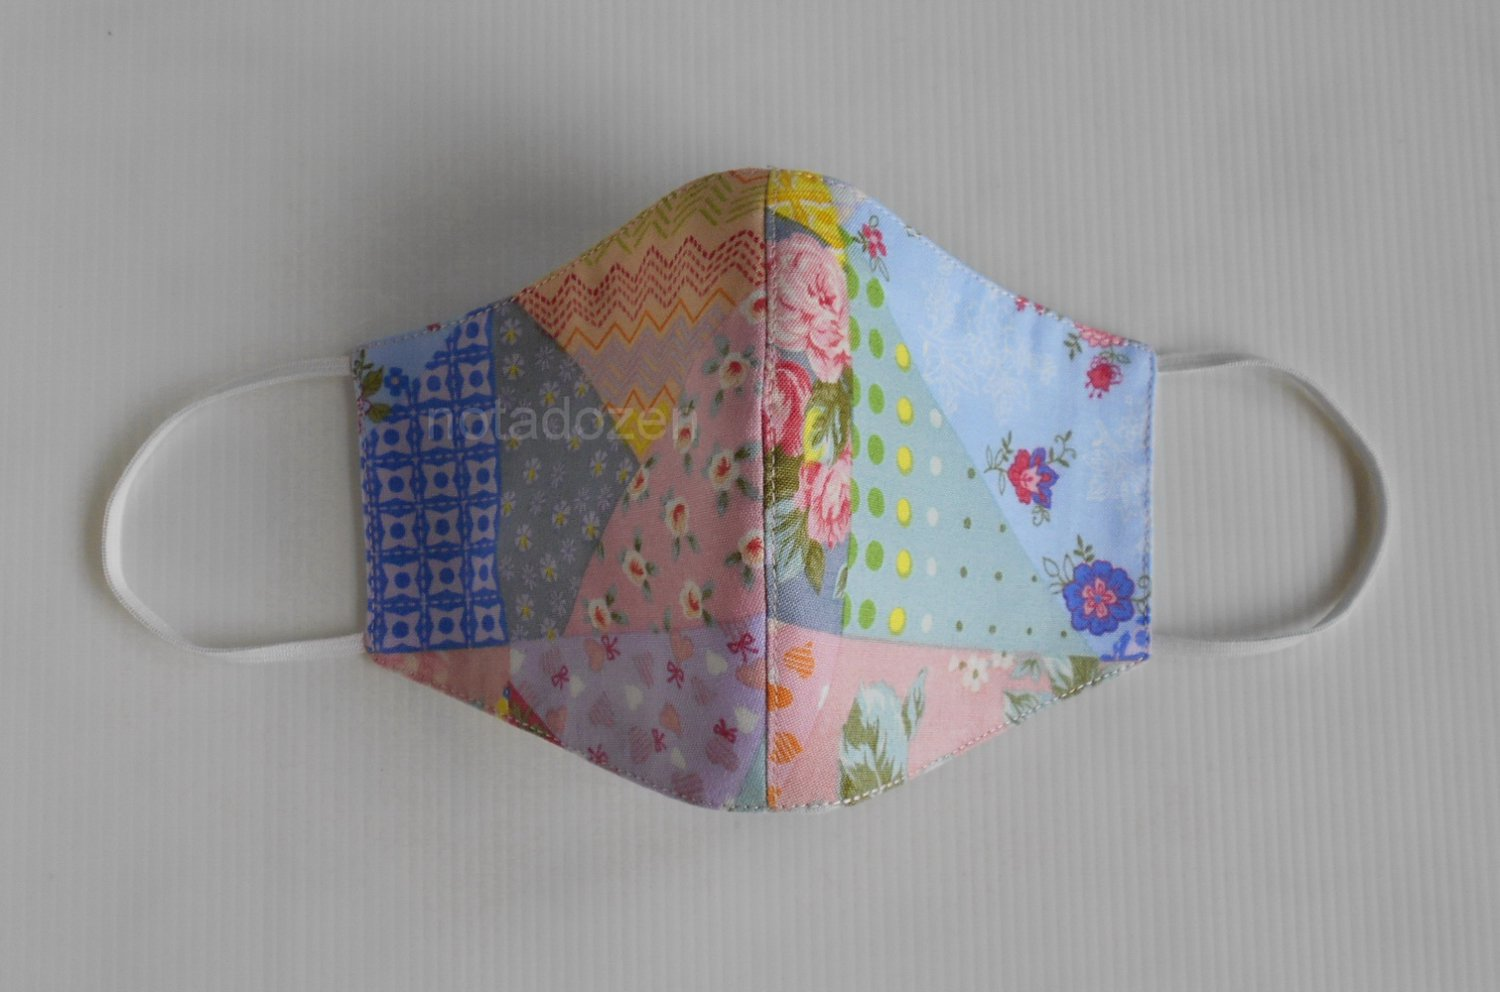 Handmade 3D Face Mask- Washable and Reusable with filter pocket and nose wire size 22x13cm.(#7)